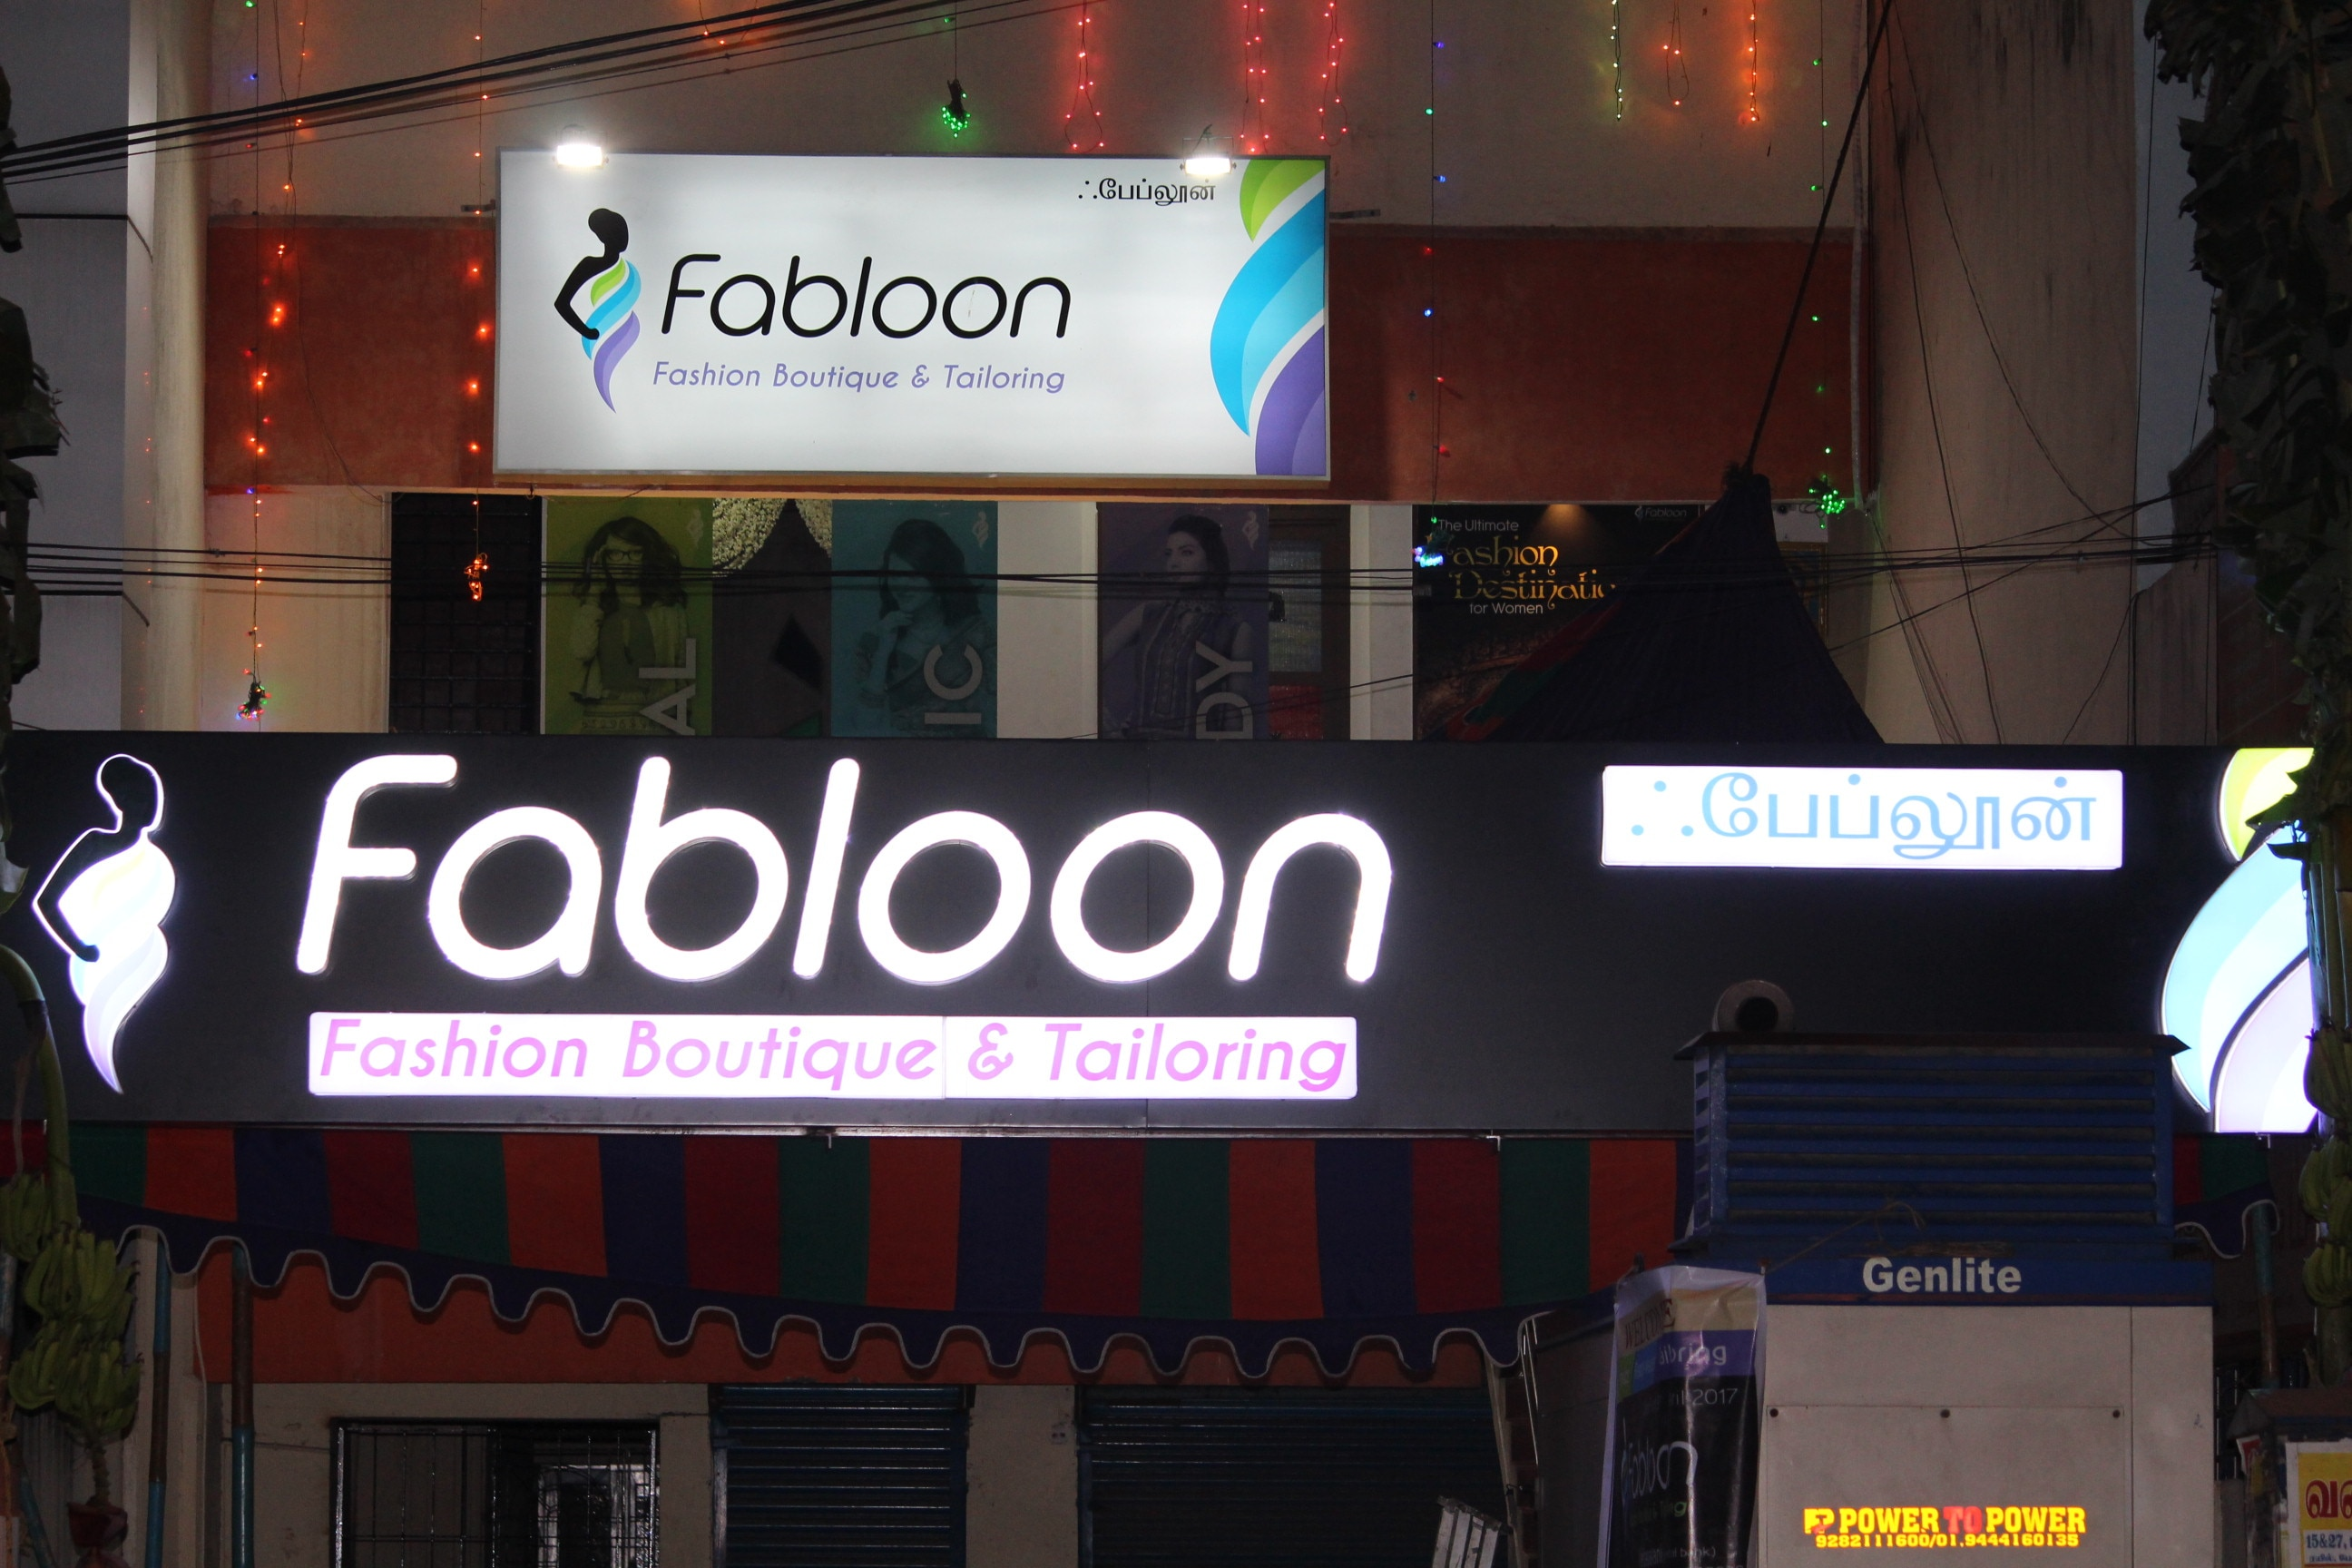 Grand opening of our branch, Fabloon Textiles and Tailoring, vadapalani, on 9.4.2017 with wishes and support of all Good hearts.,  we do #boutique specialised #womens #Textiles and #Tailoring in #Vadapalani No more Waiting for Tailors., (#ExpressDelivery available.) contact our staff at 99625 33300 / 044 486 444 11 #Sarees #Kurtis #salwars #chudis #Cotton #Georgette #crepe #chanderisilks #silkcotton #summercotton #coracotton #cottacotton #chiffon #cottonsilk #uniformsarees #uniform #purecotton #LadiesTailoring #chennai #bridalblouse #designerblouse #Patternblouse #westernwear #blouse #stitching